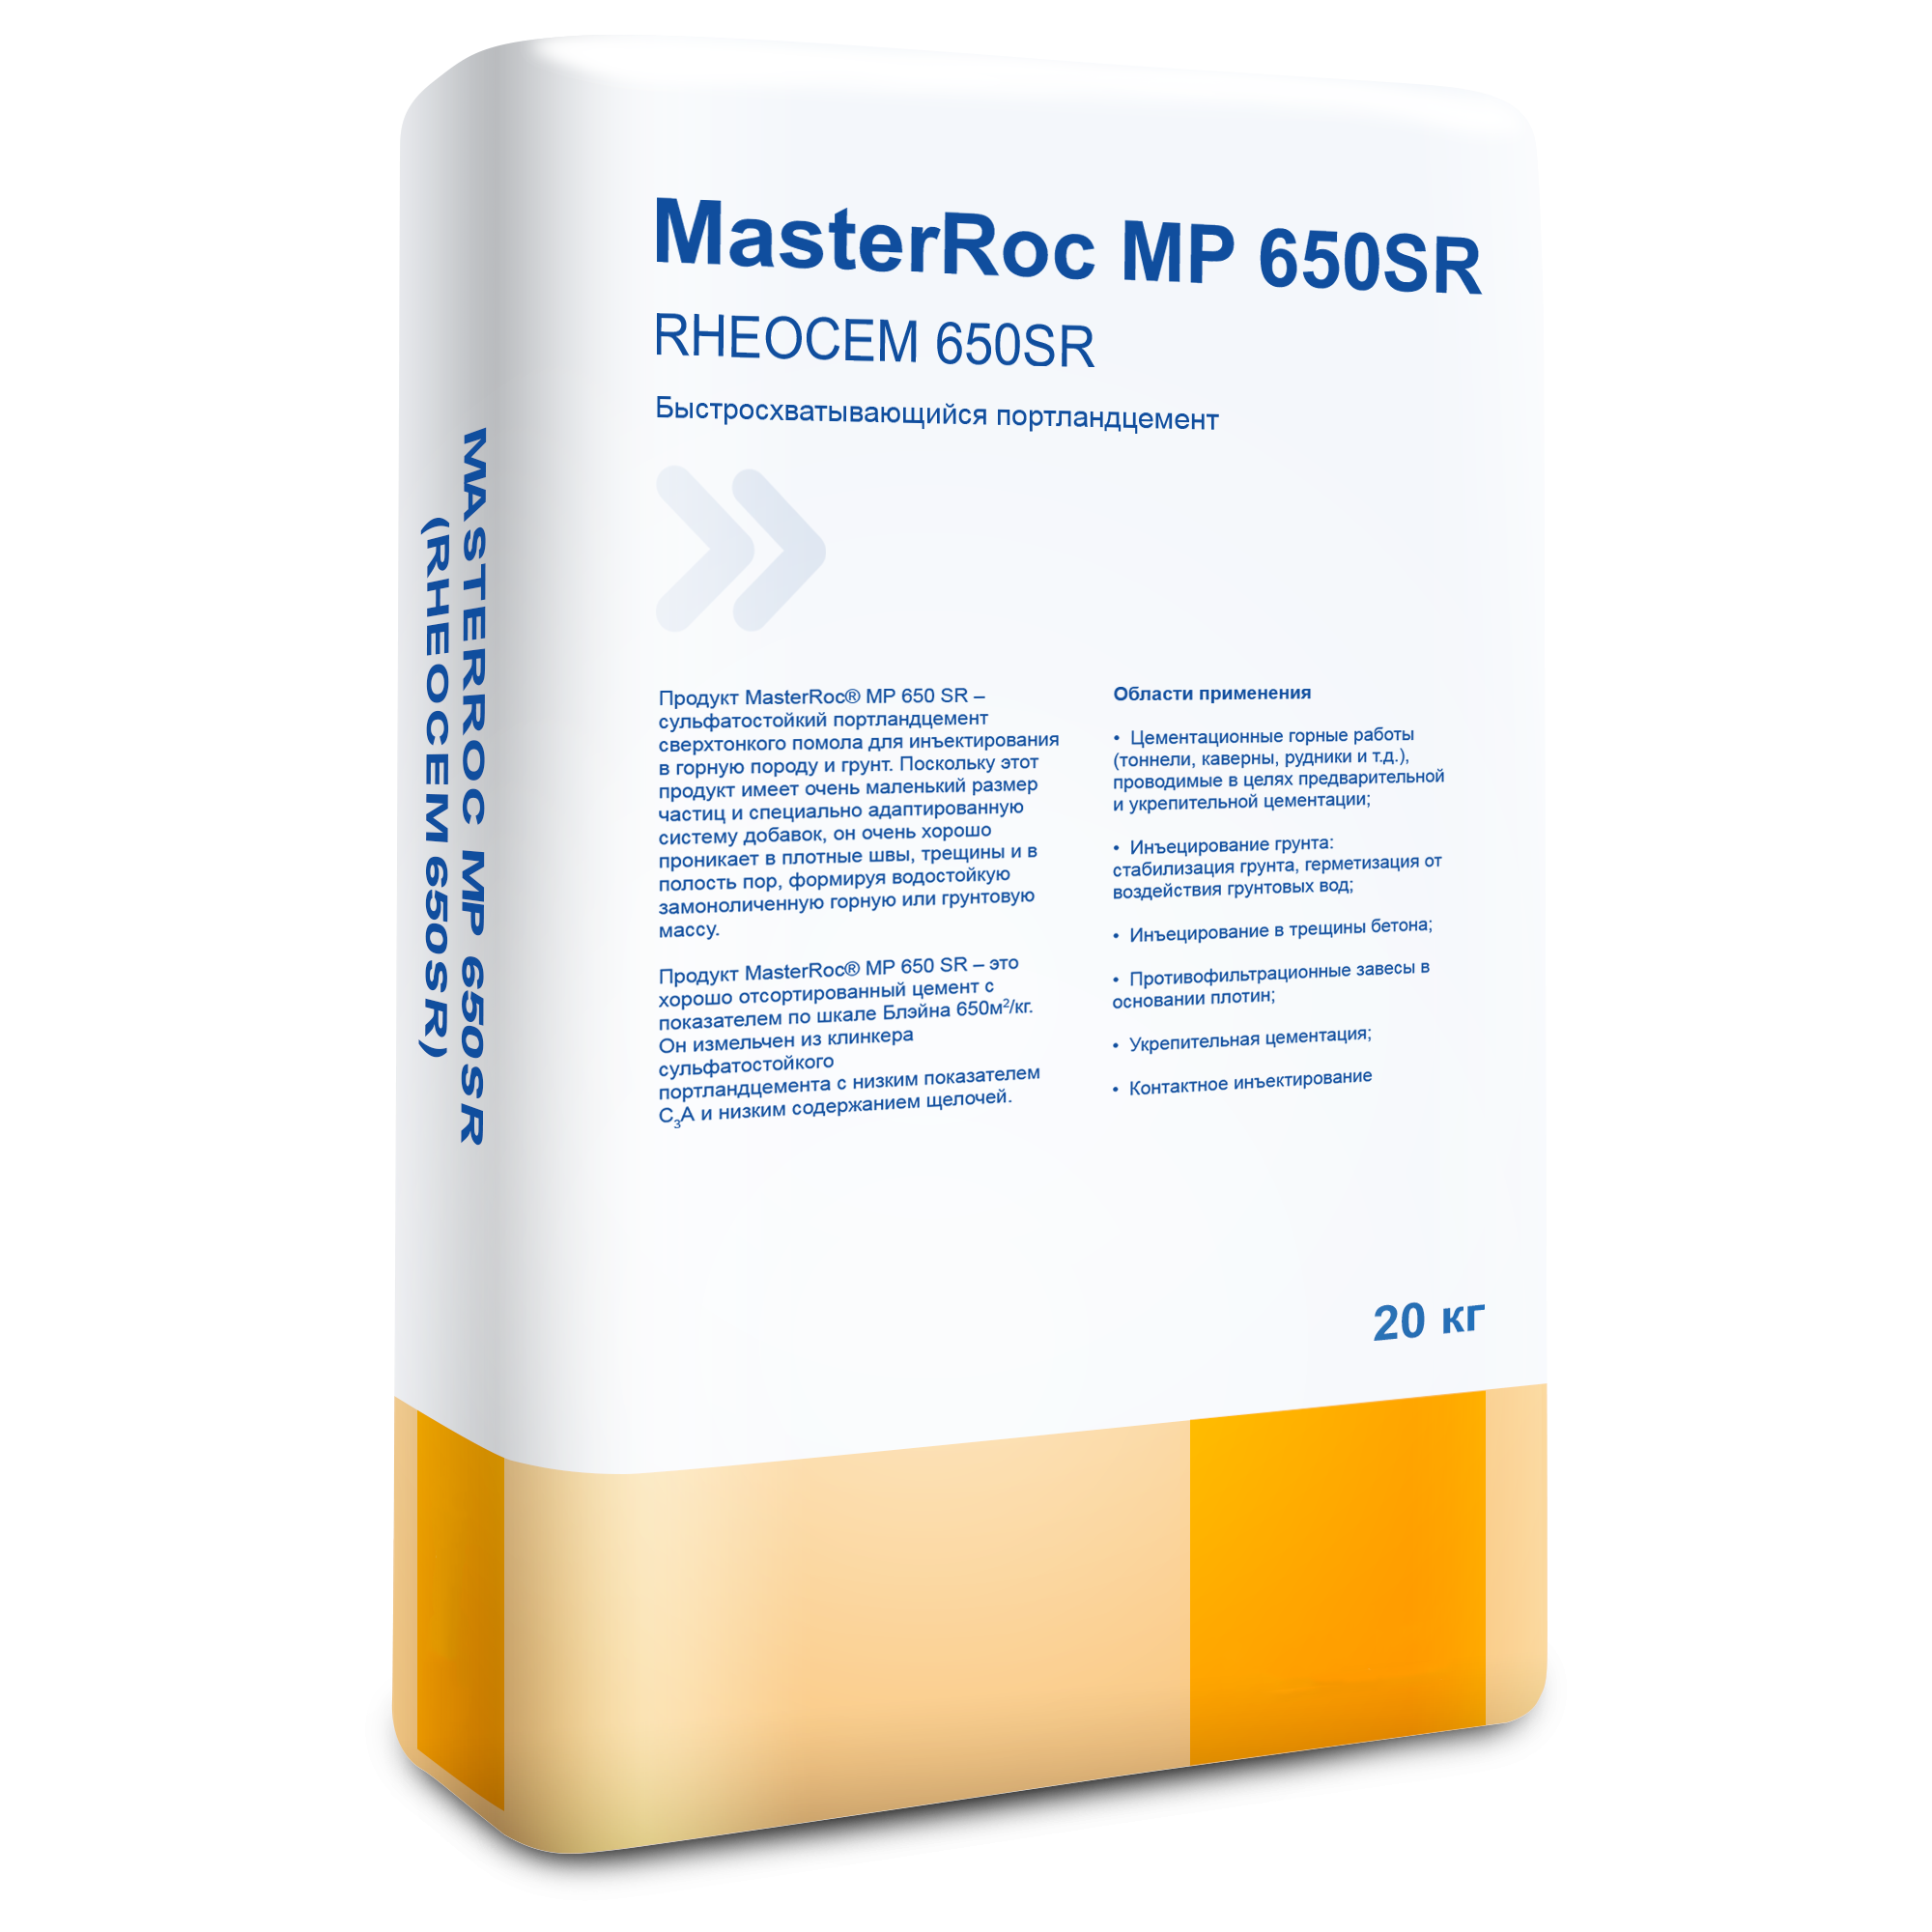 MasterRoc MP 650SR